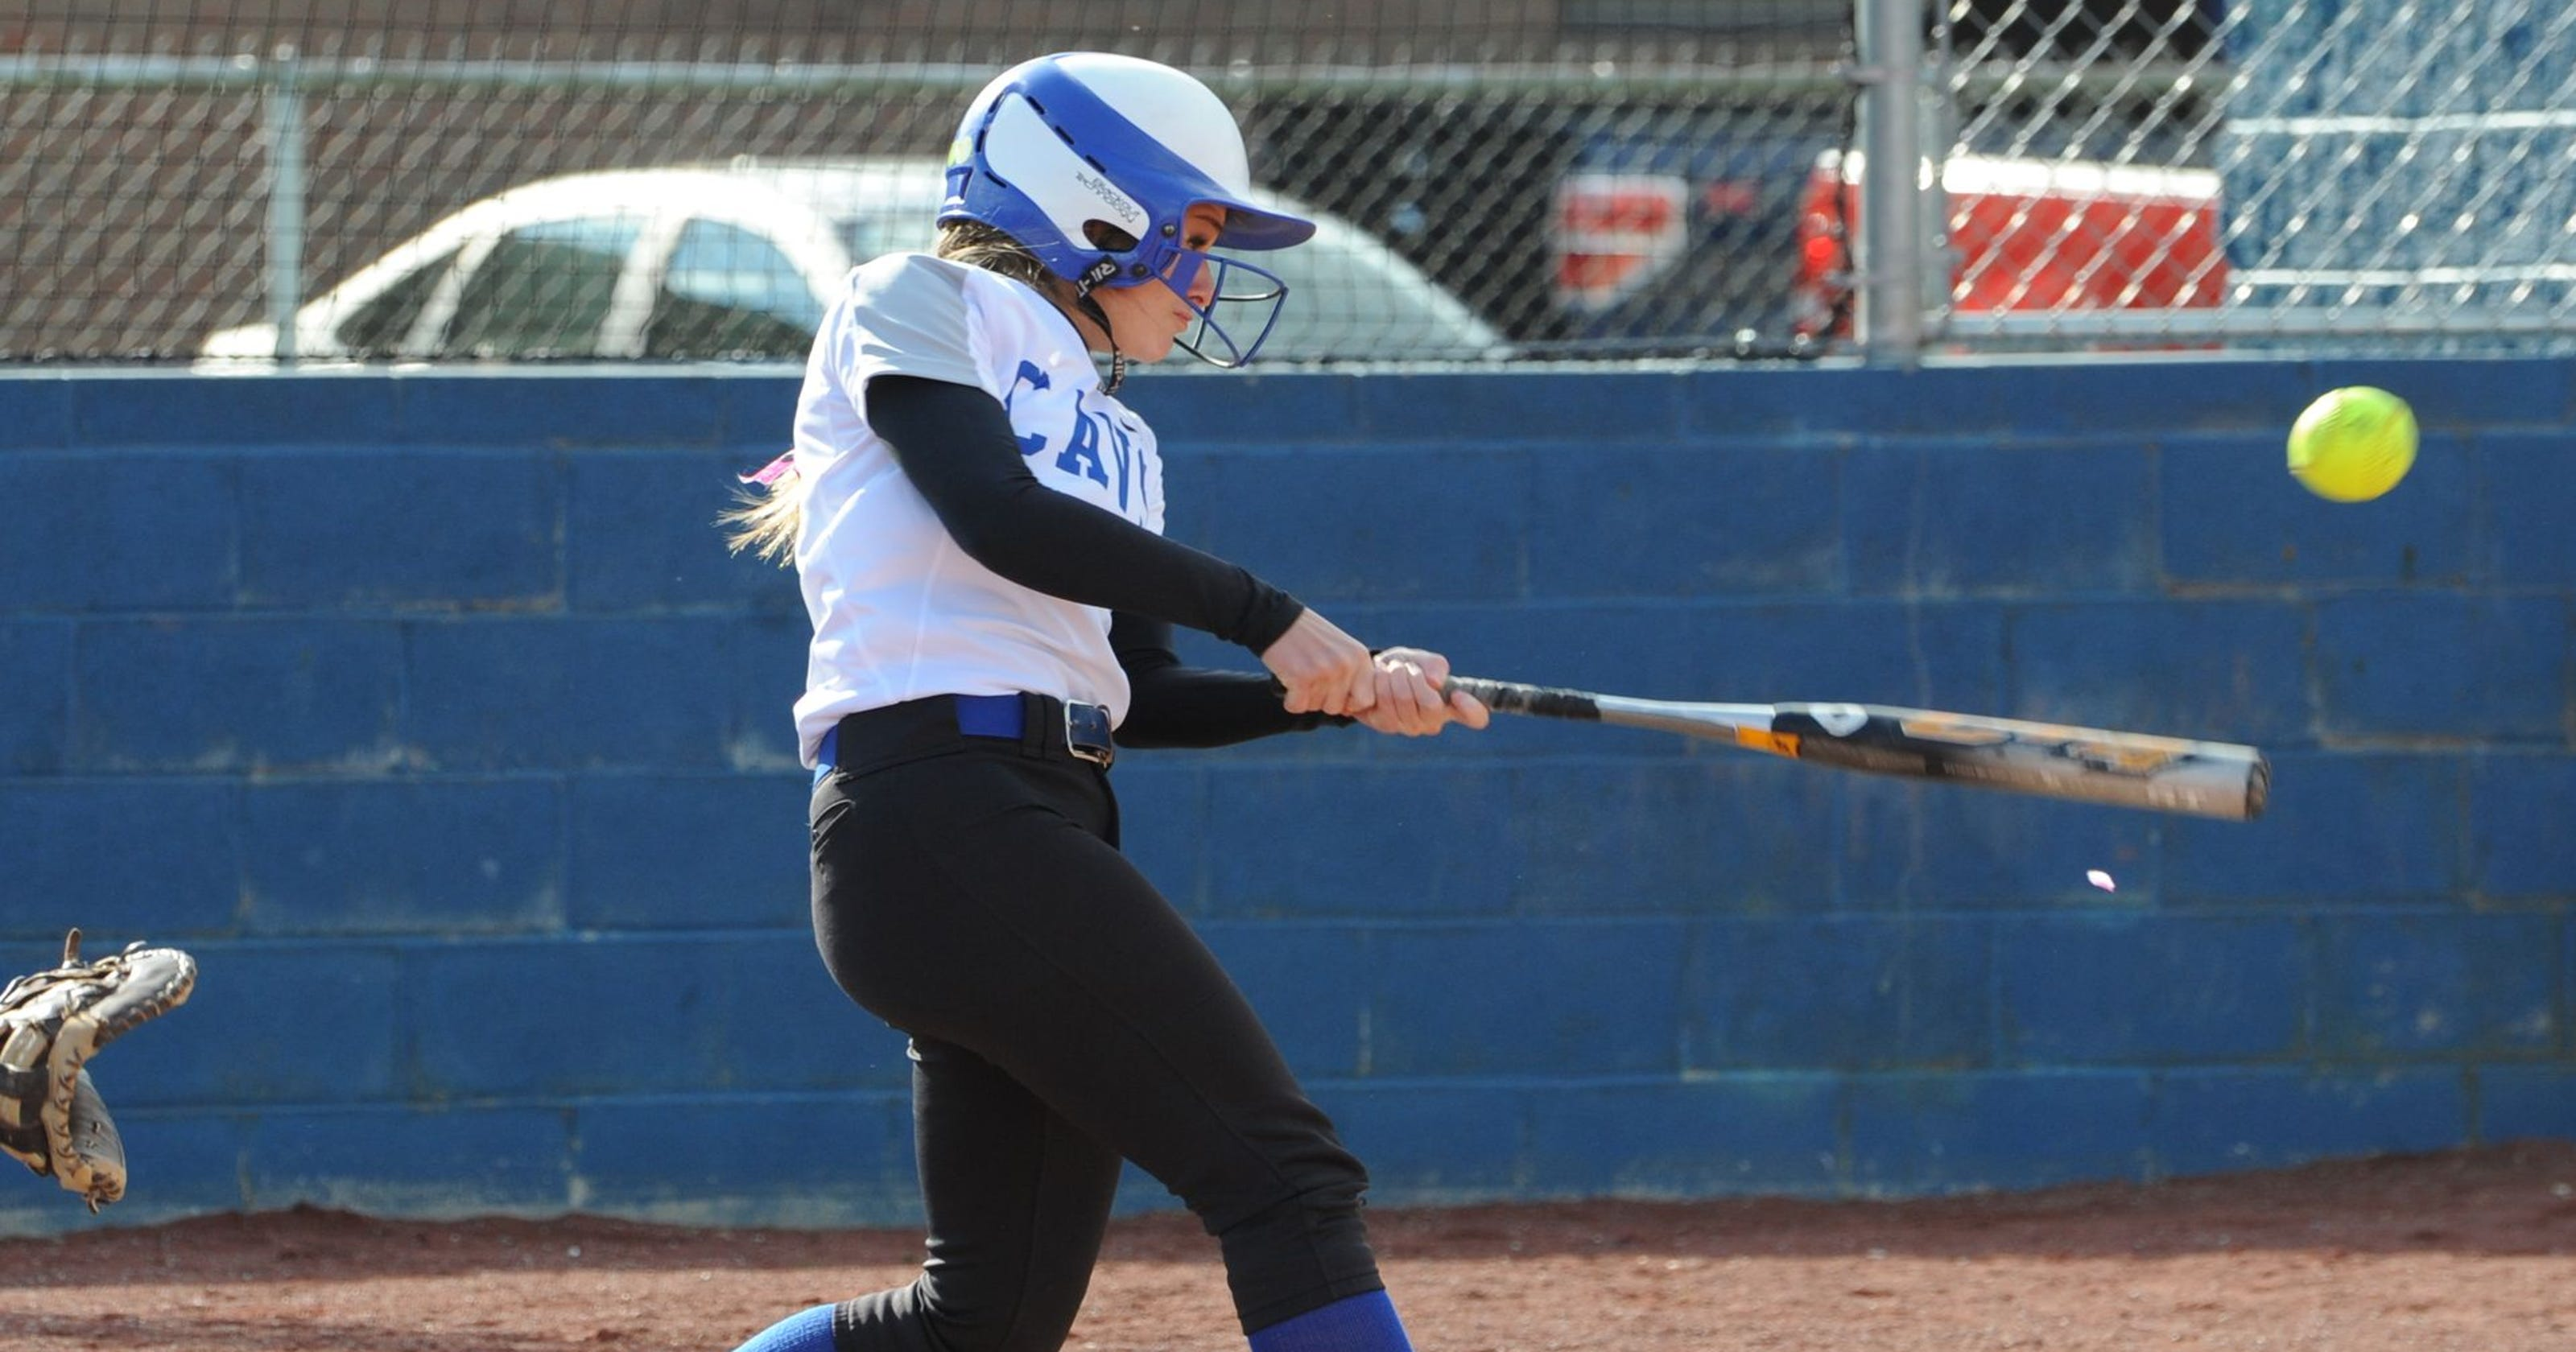 Travel ball a must for high school softball players